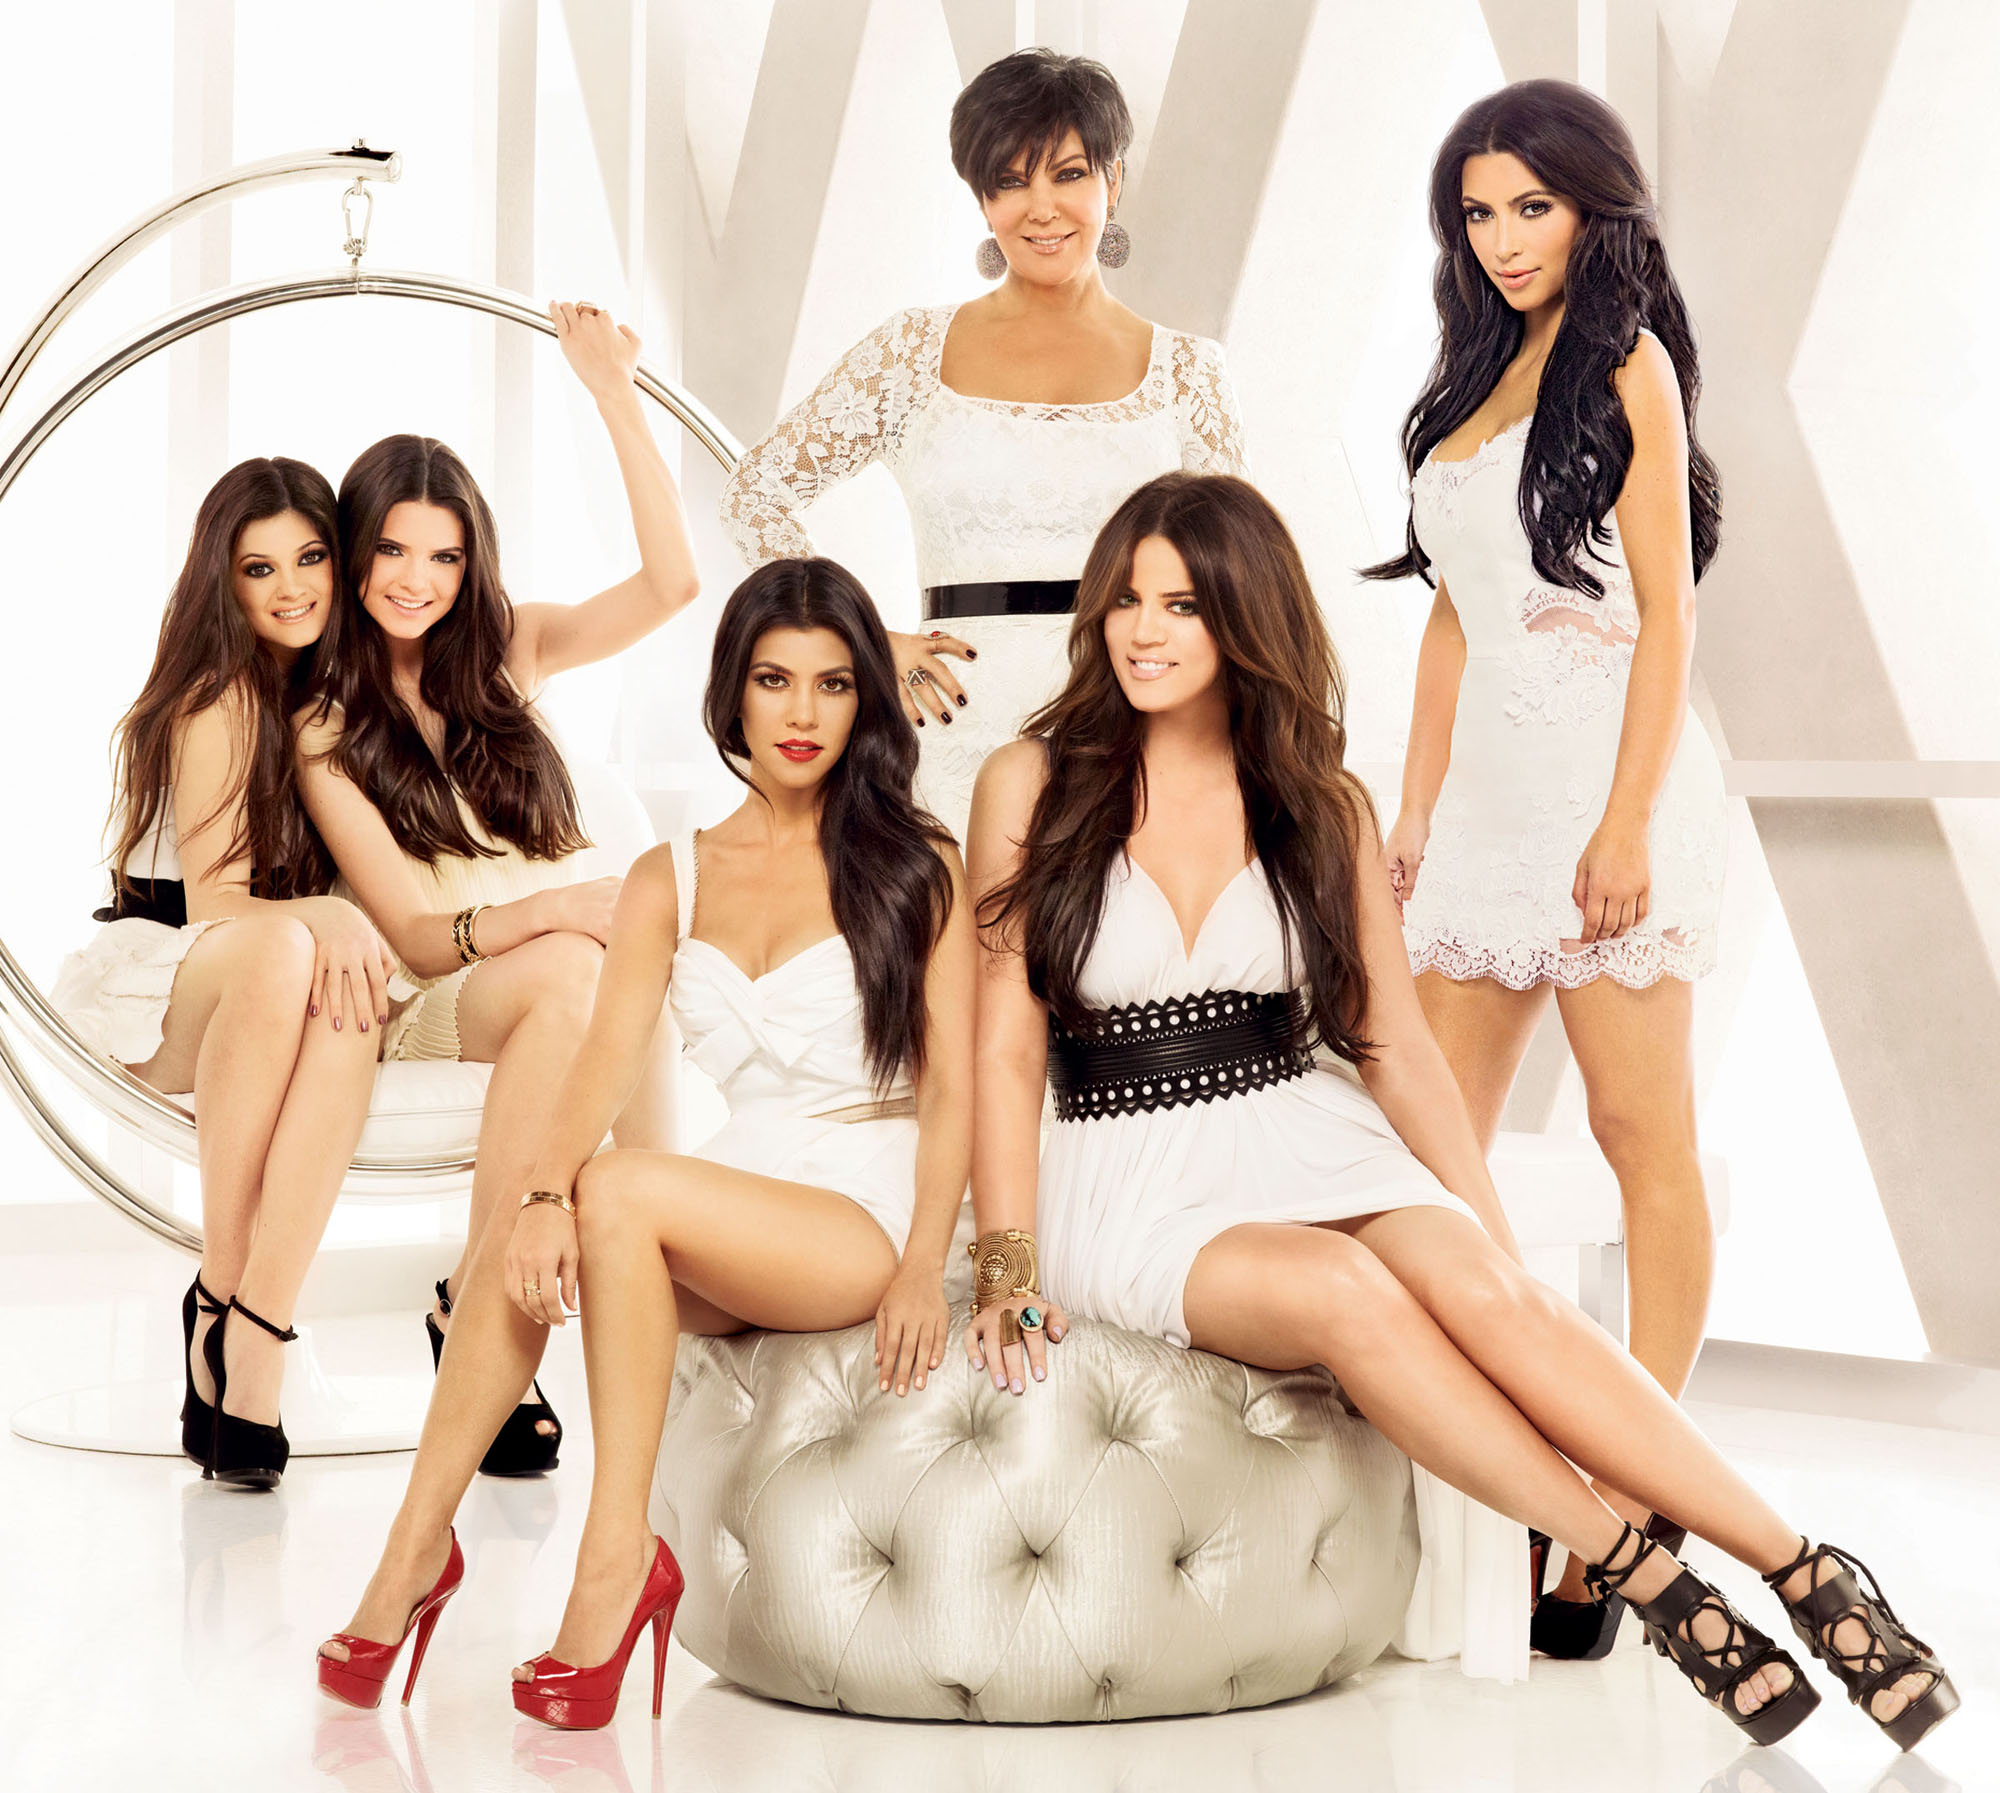 Family photo of the model famous for Keeping Up with the Kardashians (Reality TV) & New York, Milan, and Paris Fashion.